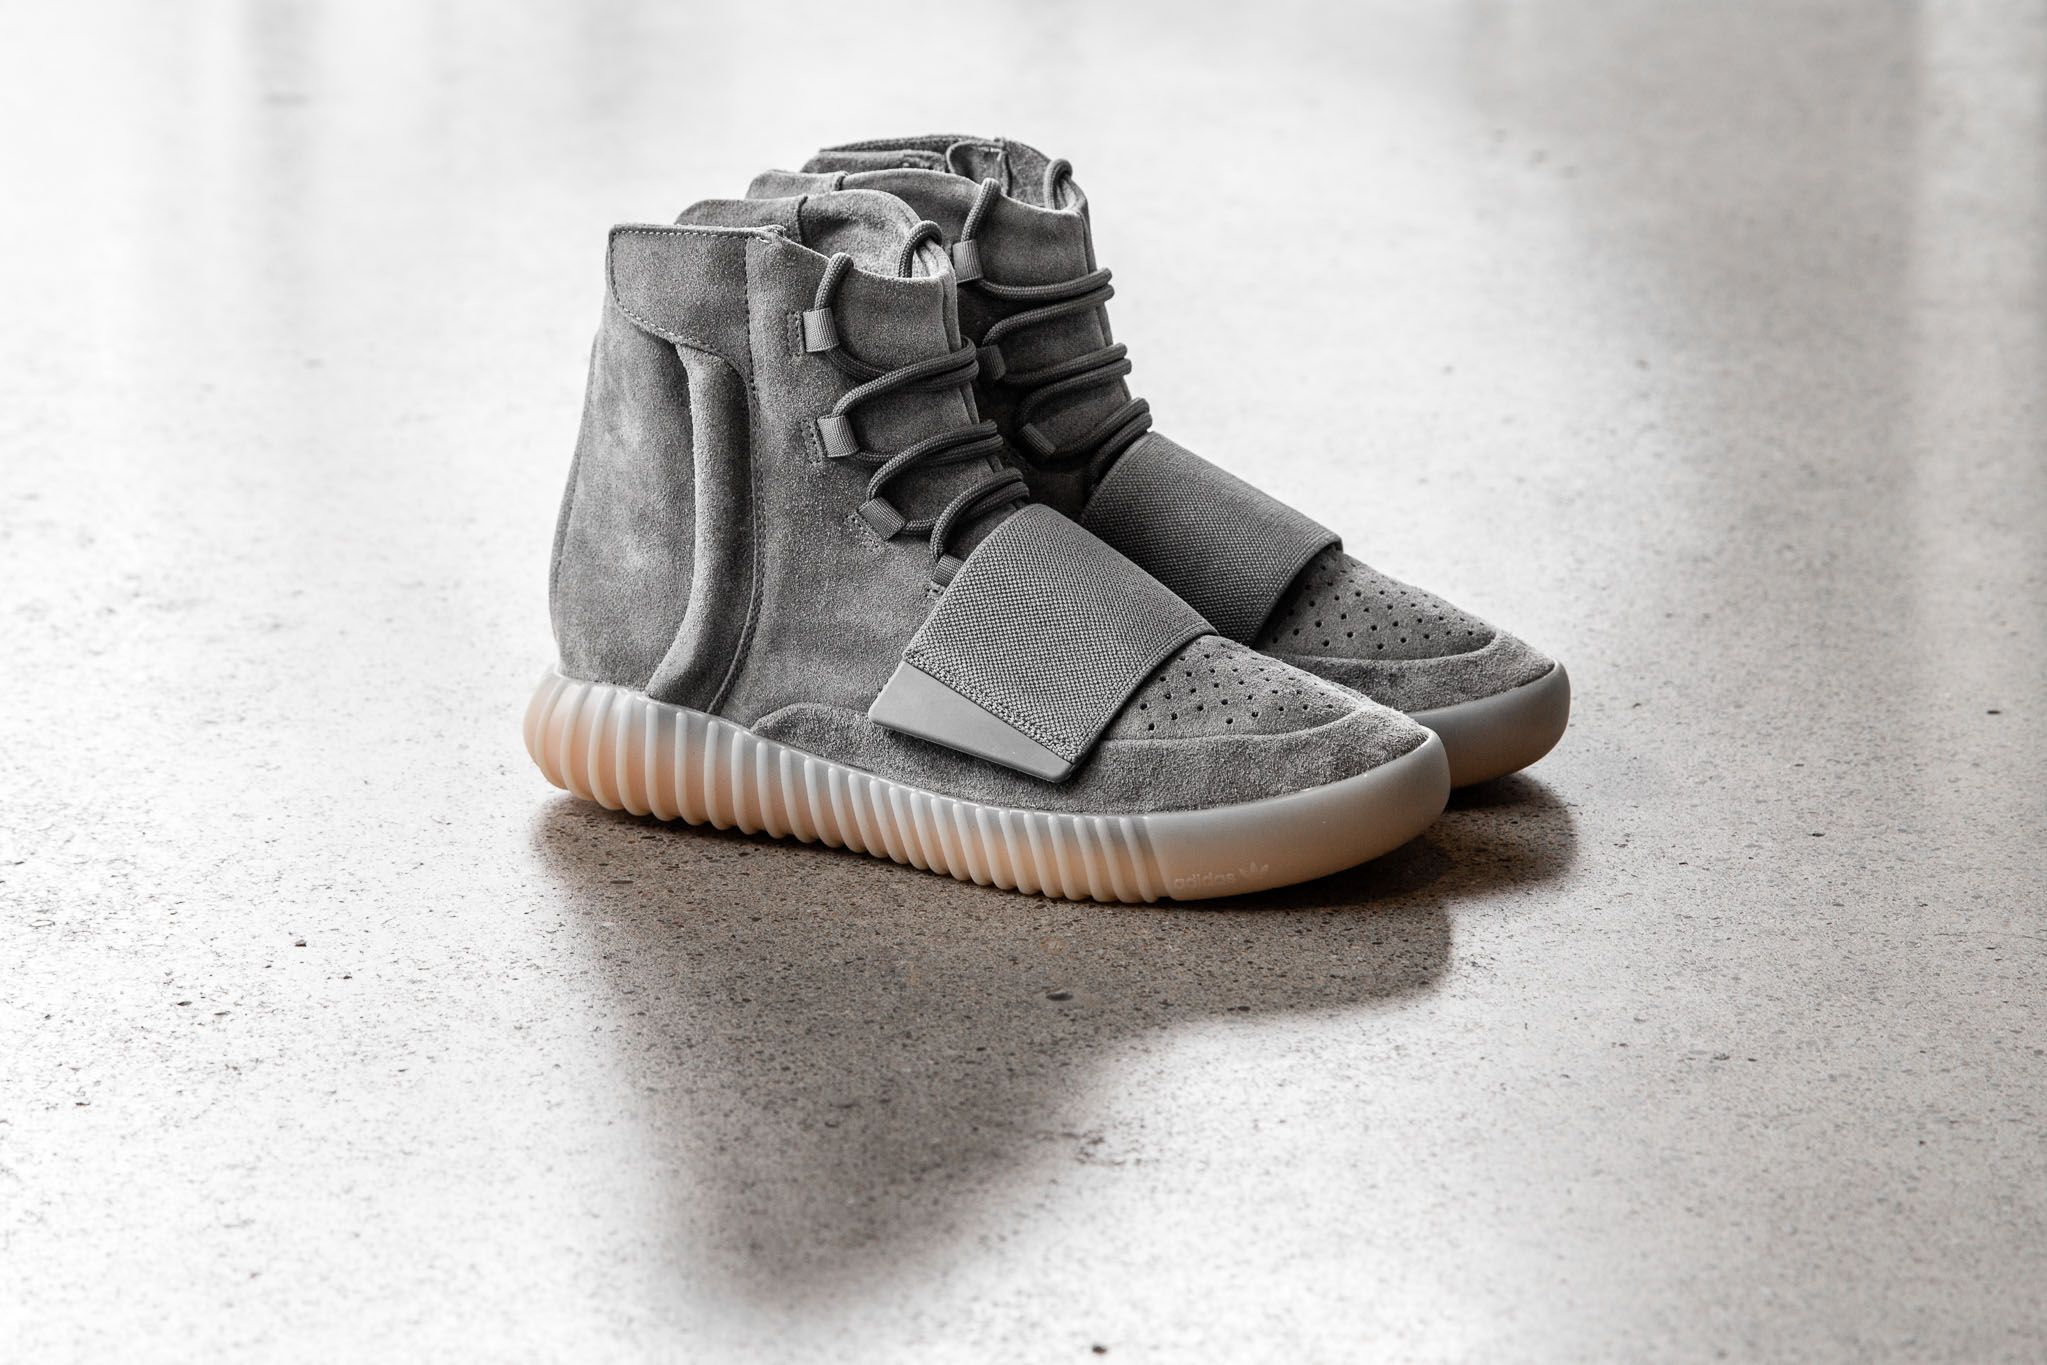 info for 6154b 06573 adidas Originals x Kanye West Yeezy 750 Boost  Release Information  HAVEN